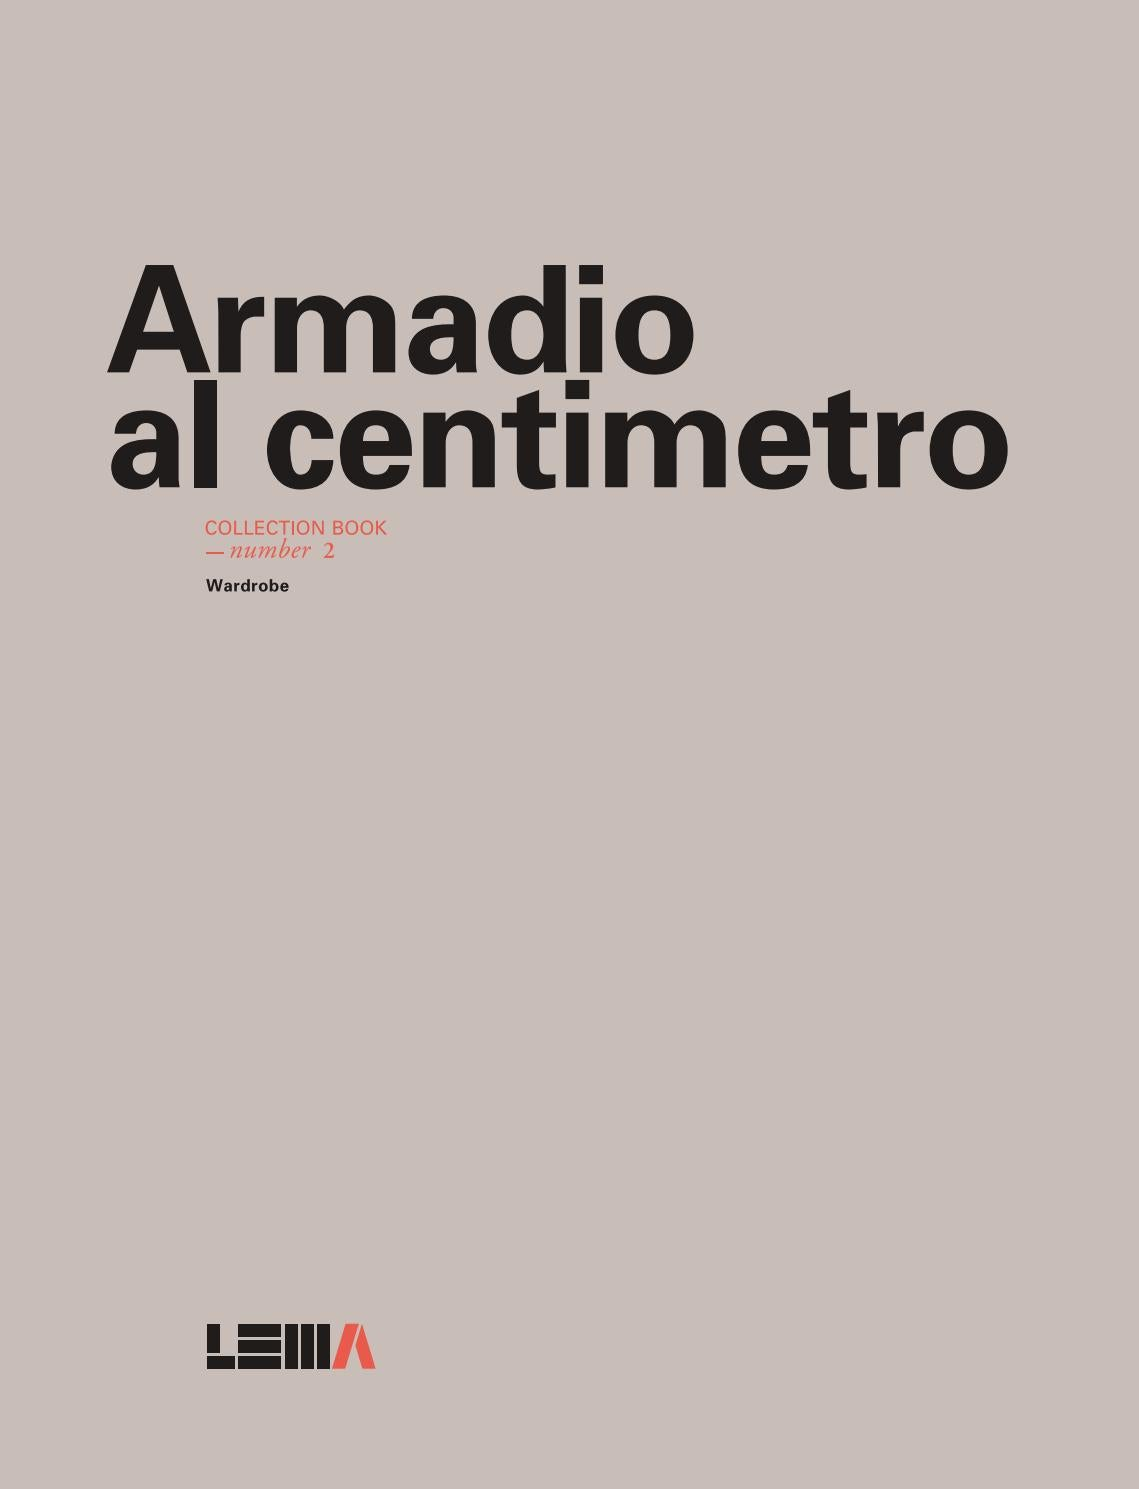 Armadio Angolare Lema Xtra 2016 Lema Armadio Al Centimetro Collection Book By Xtra